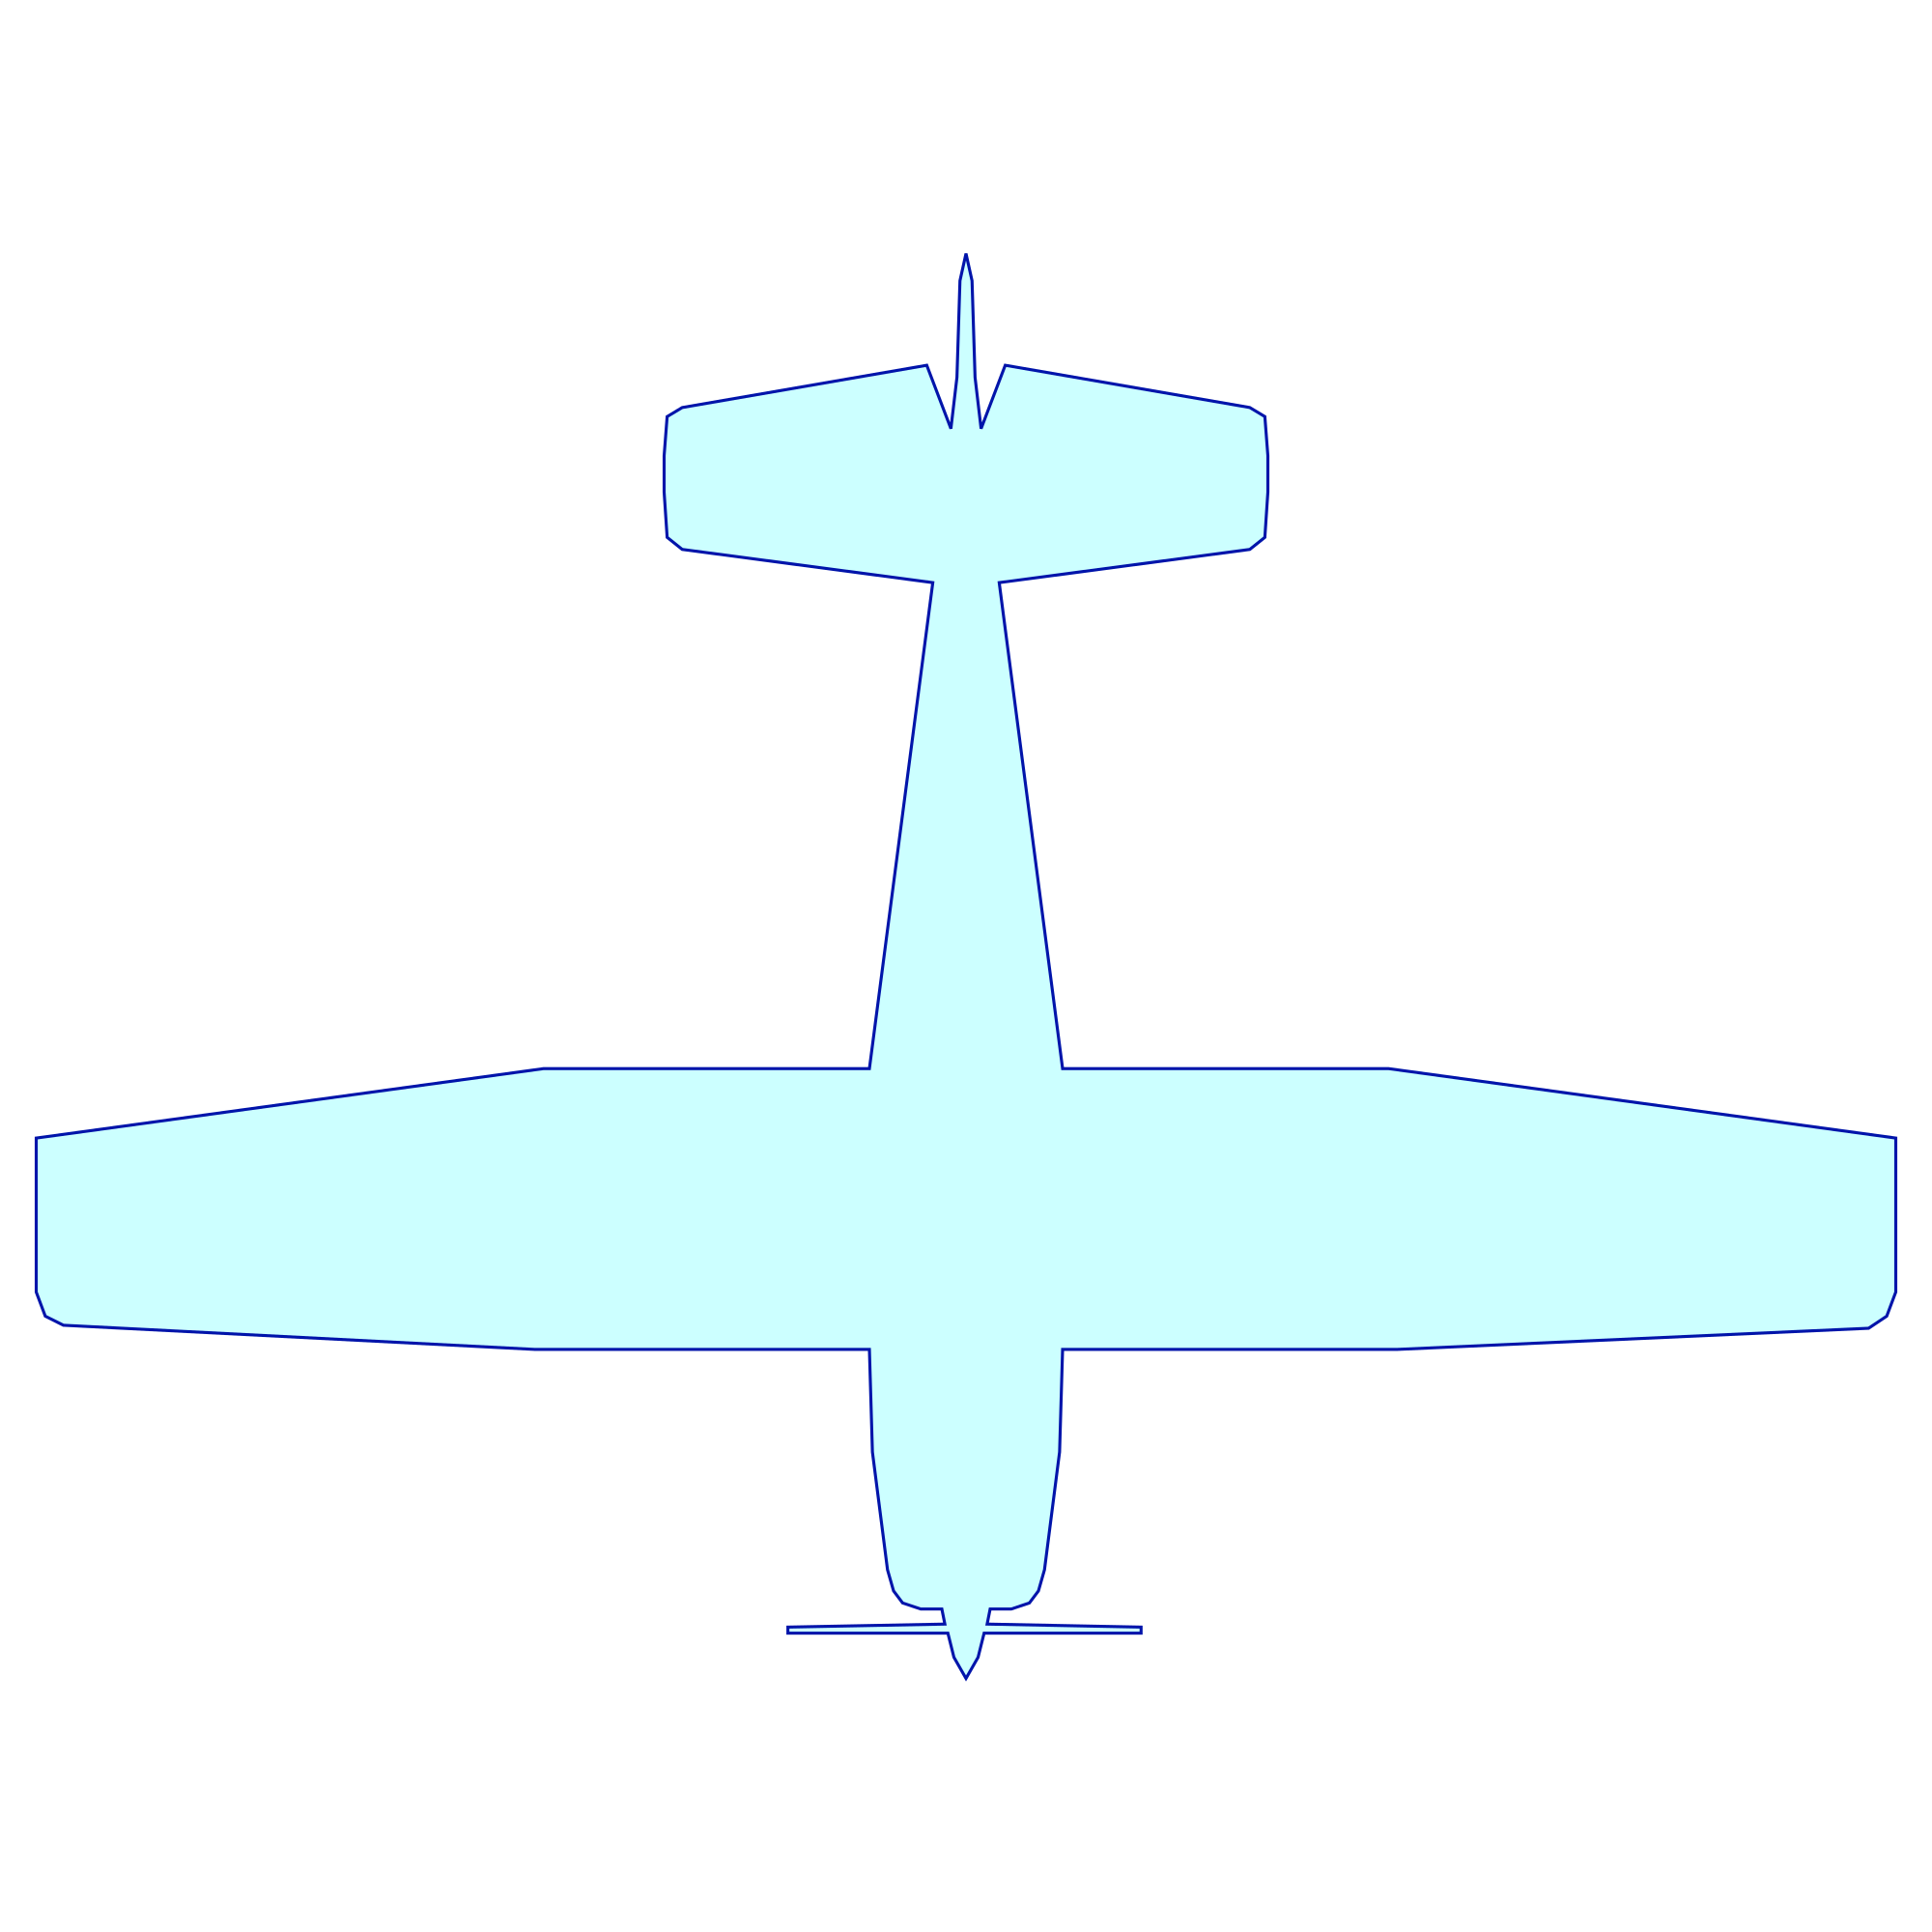 Svg airline cessna. File flyingpete icons withprop